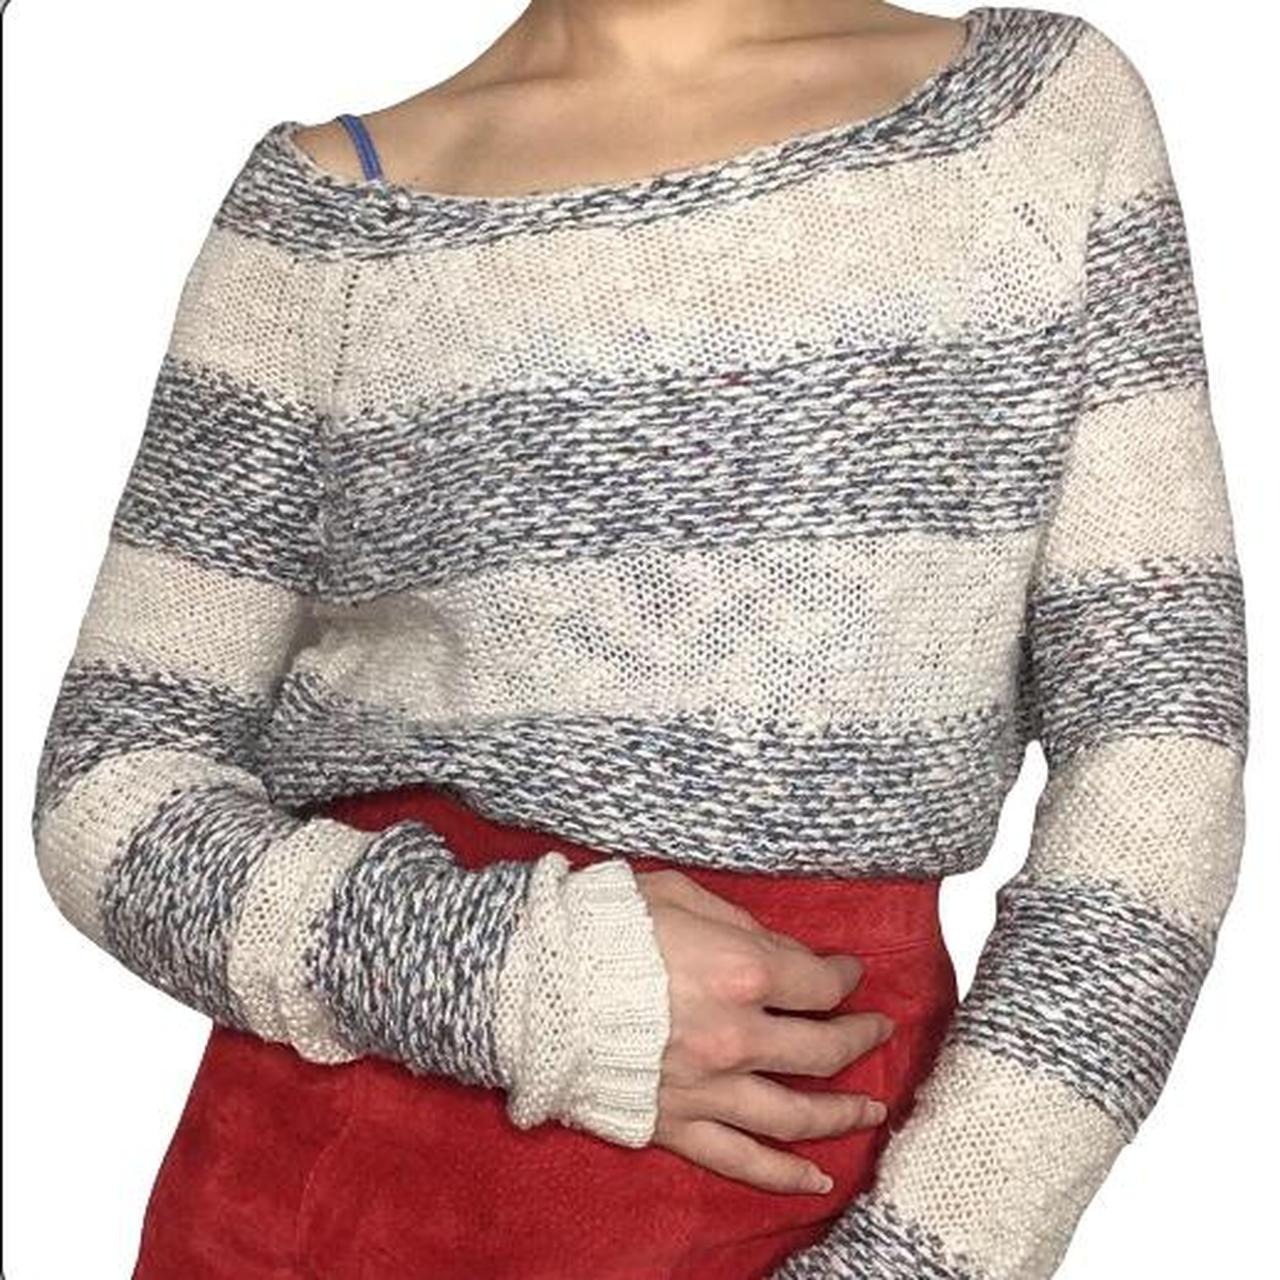 Product Image 1 - Cute knit white and grey